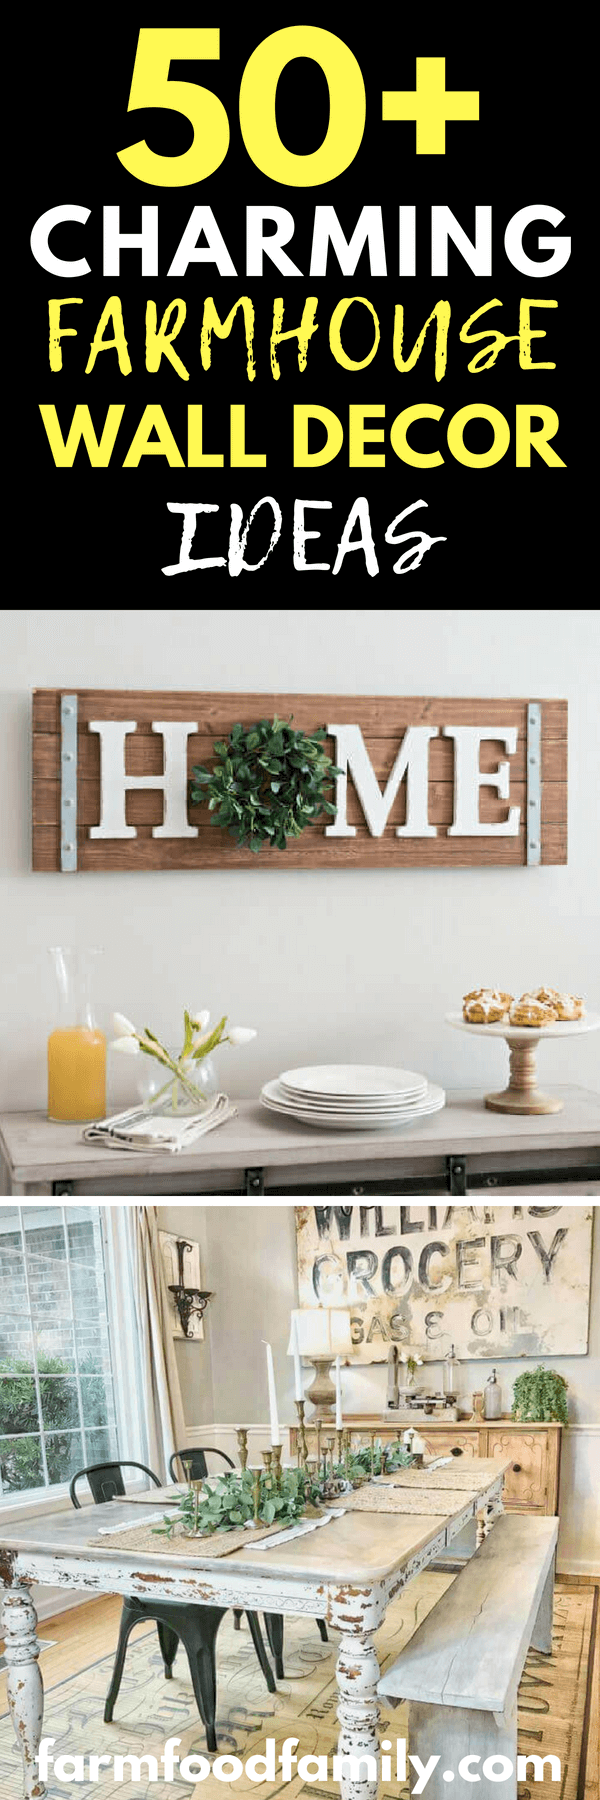 While floor décor and table accents can add up and quickly contribute to a cluttered look, walls are a great way to bring more of the farmhouse aesthetic into your home. The following list has a wide array of designs. Some were made with a specific season or holiday in mind while others offer timeless appeal.